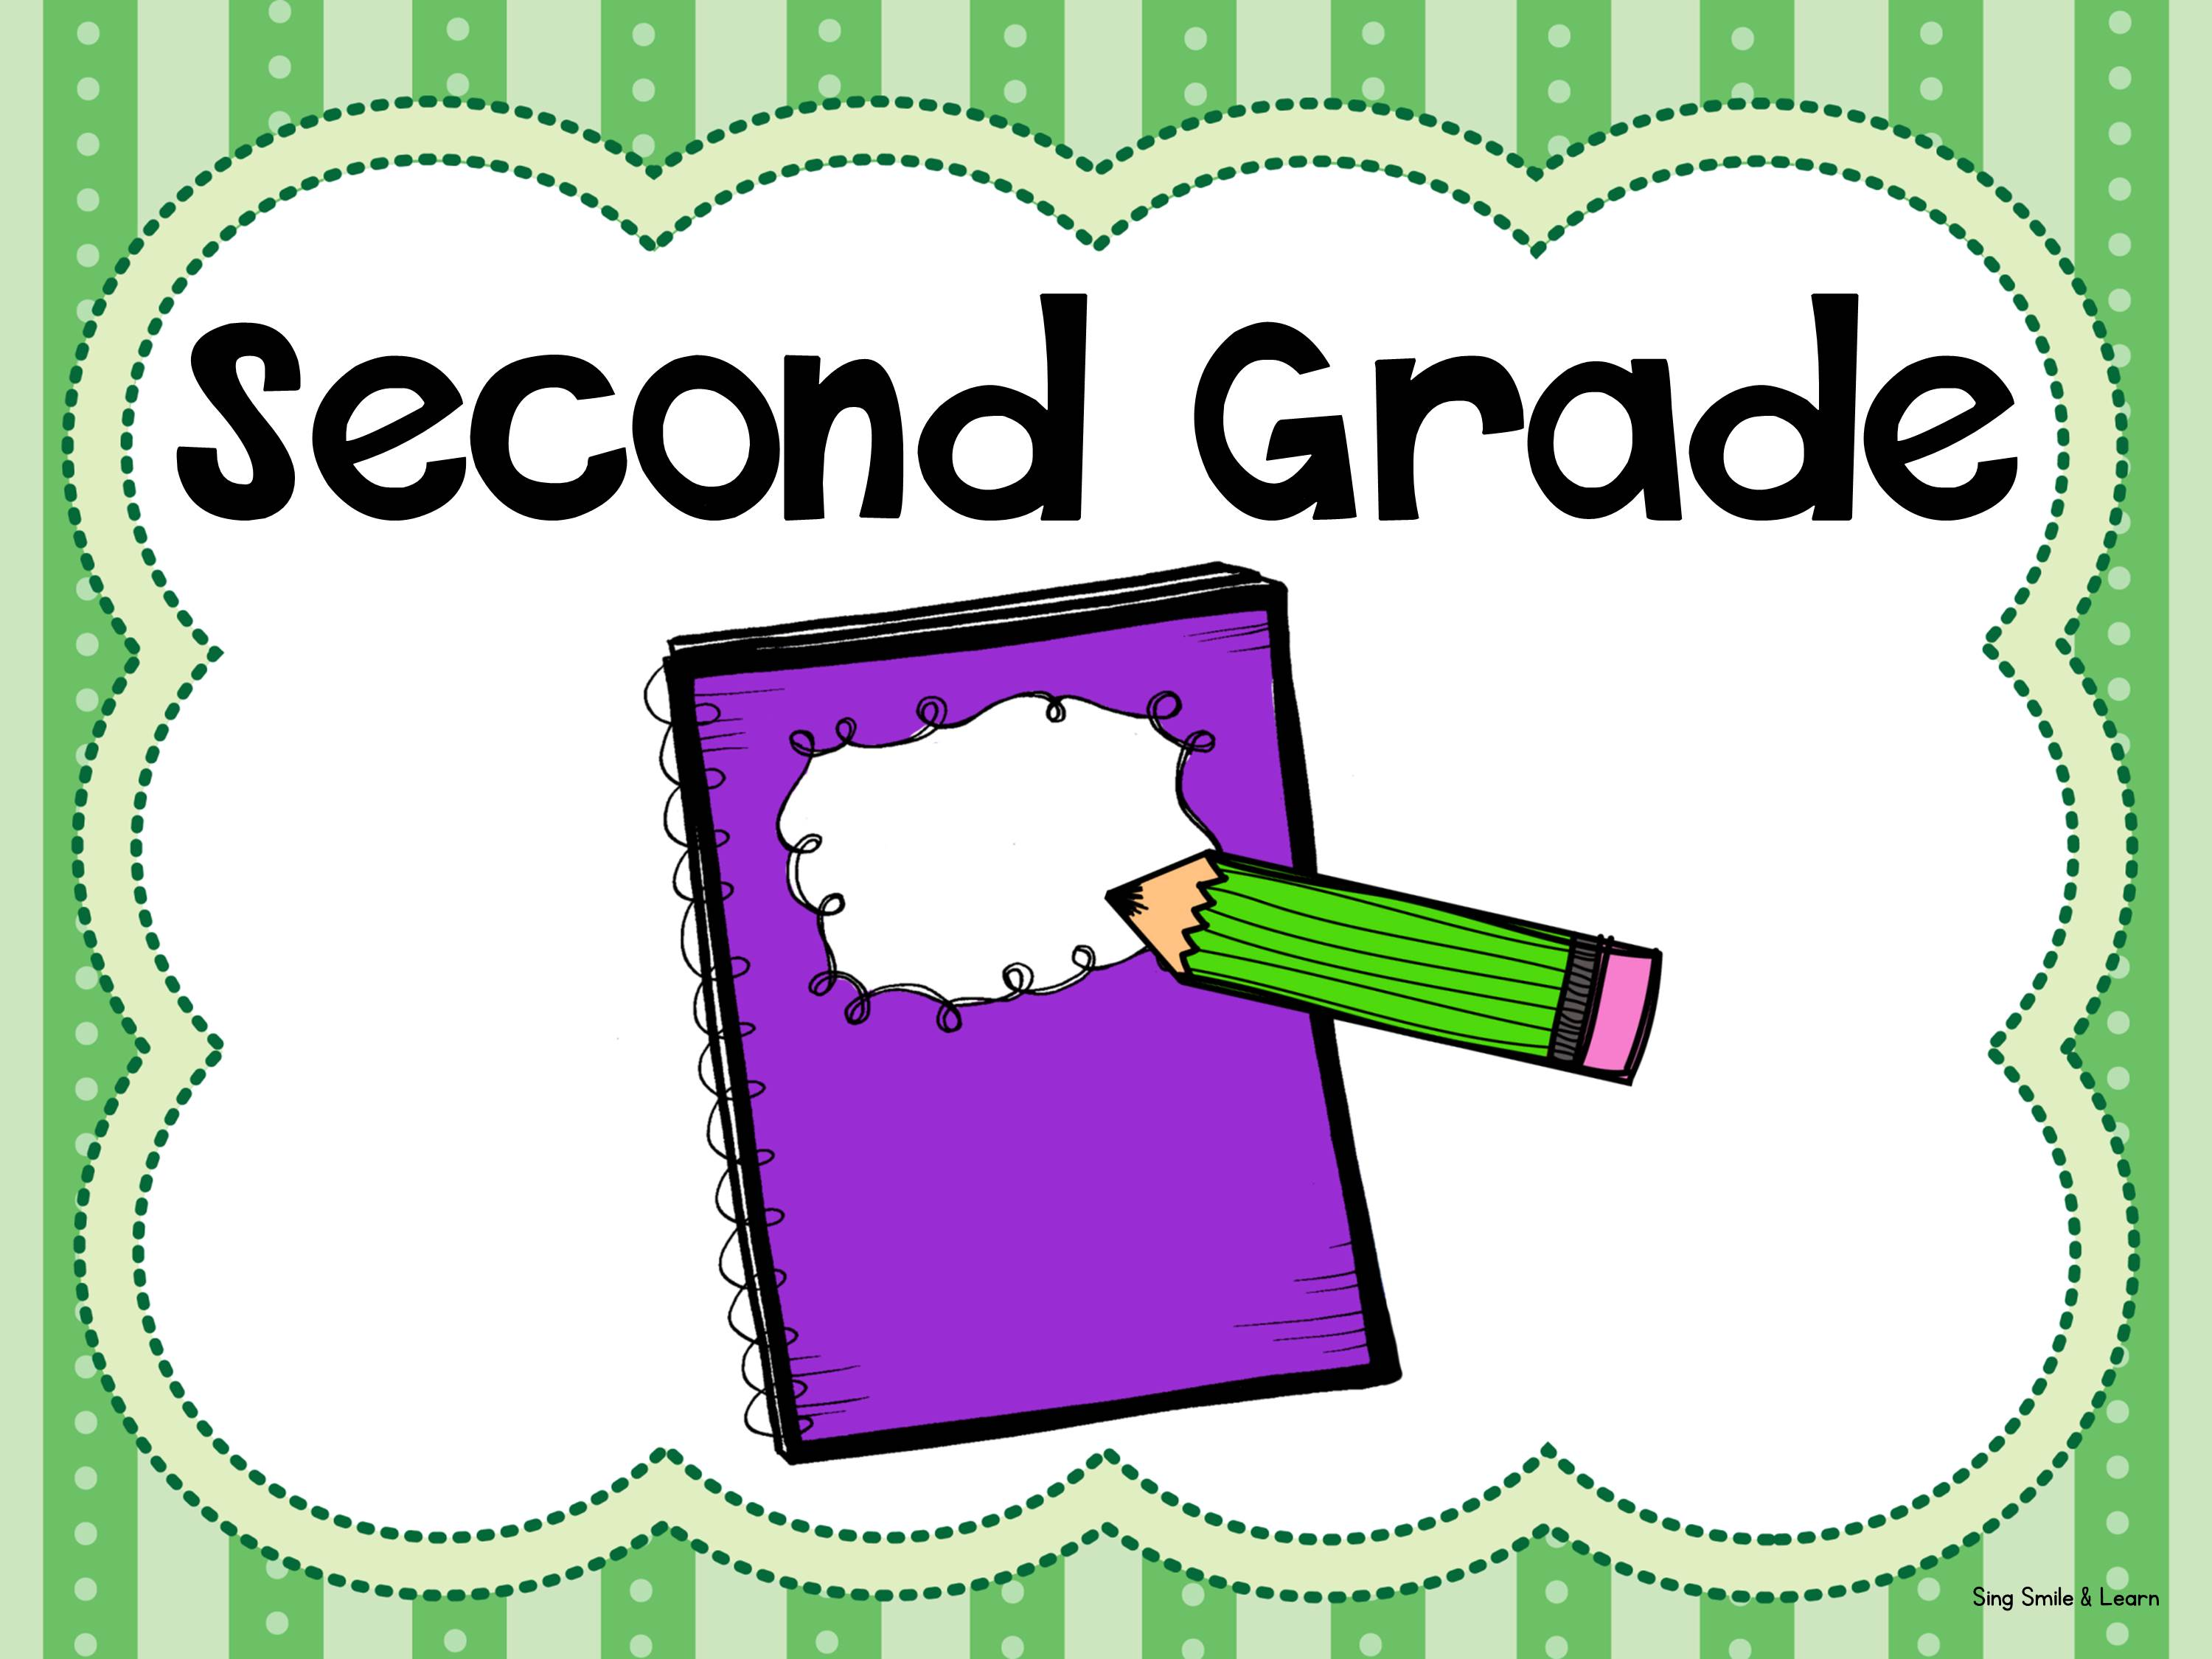 Second Grade Clipart Second grade board cover